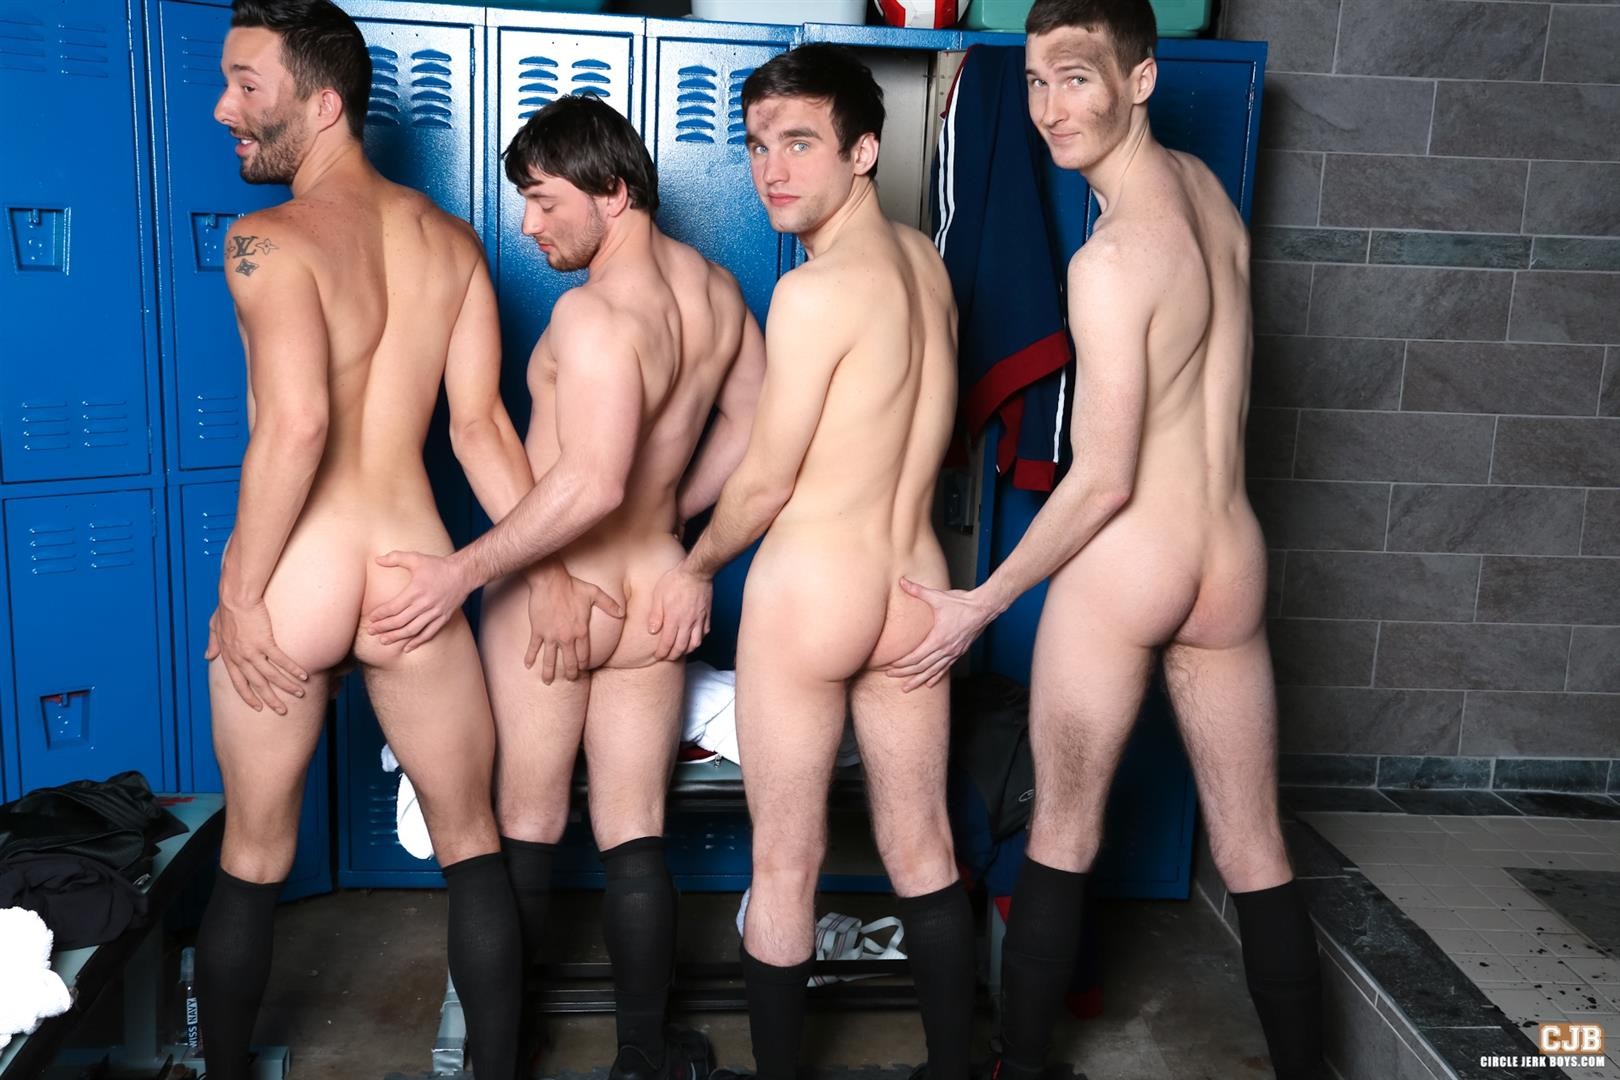 Circle Jerk Boys Andrew Collins and Isaac Hardy and Josh Pierce and Scott Harbor Soccer Guys Sucking Cock Amateur Gay Porn 12